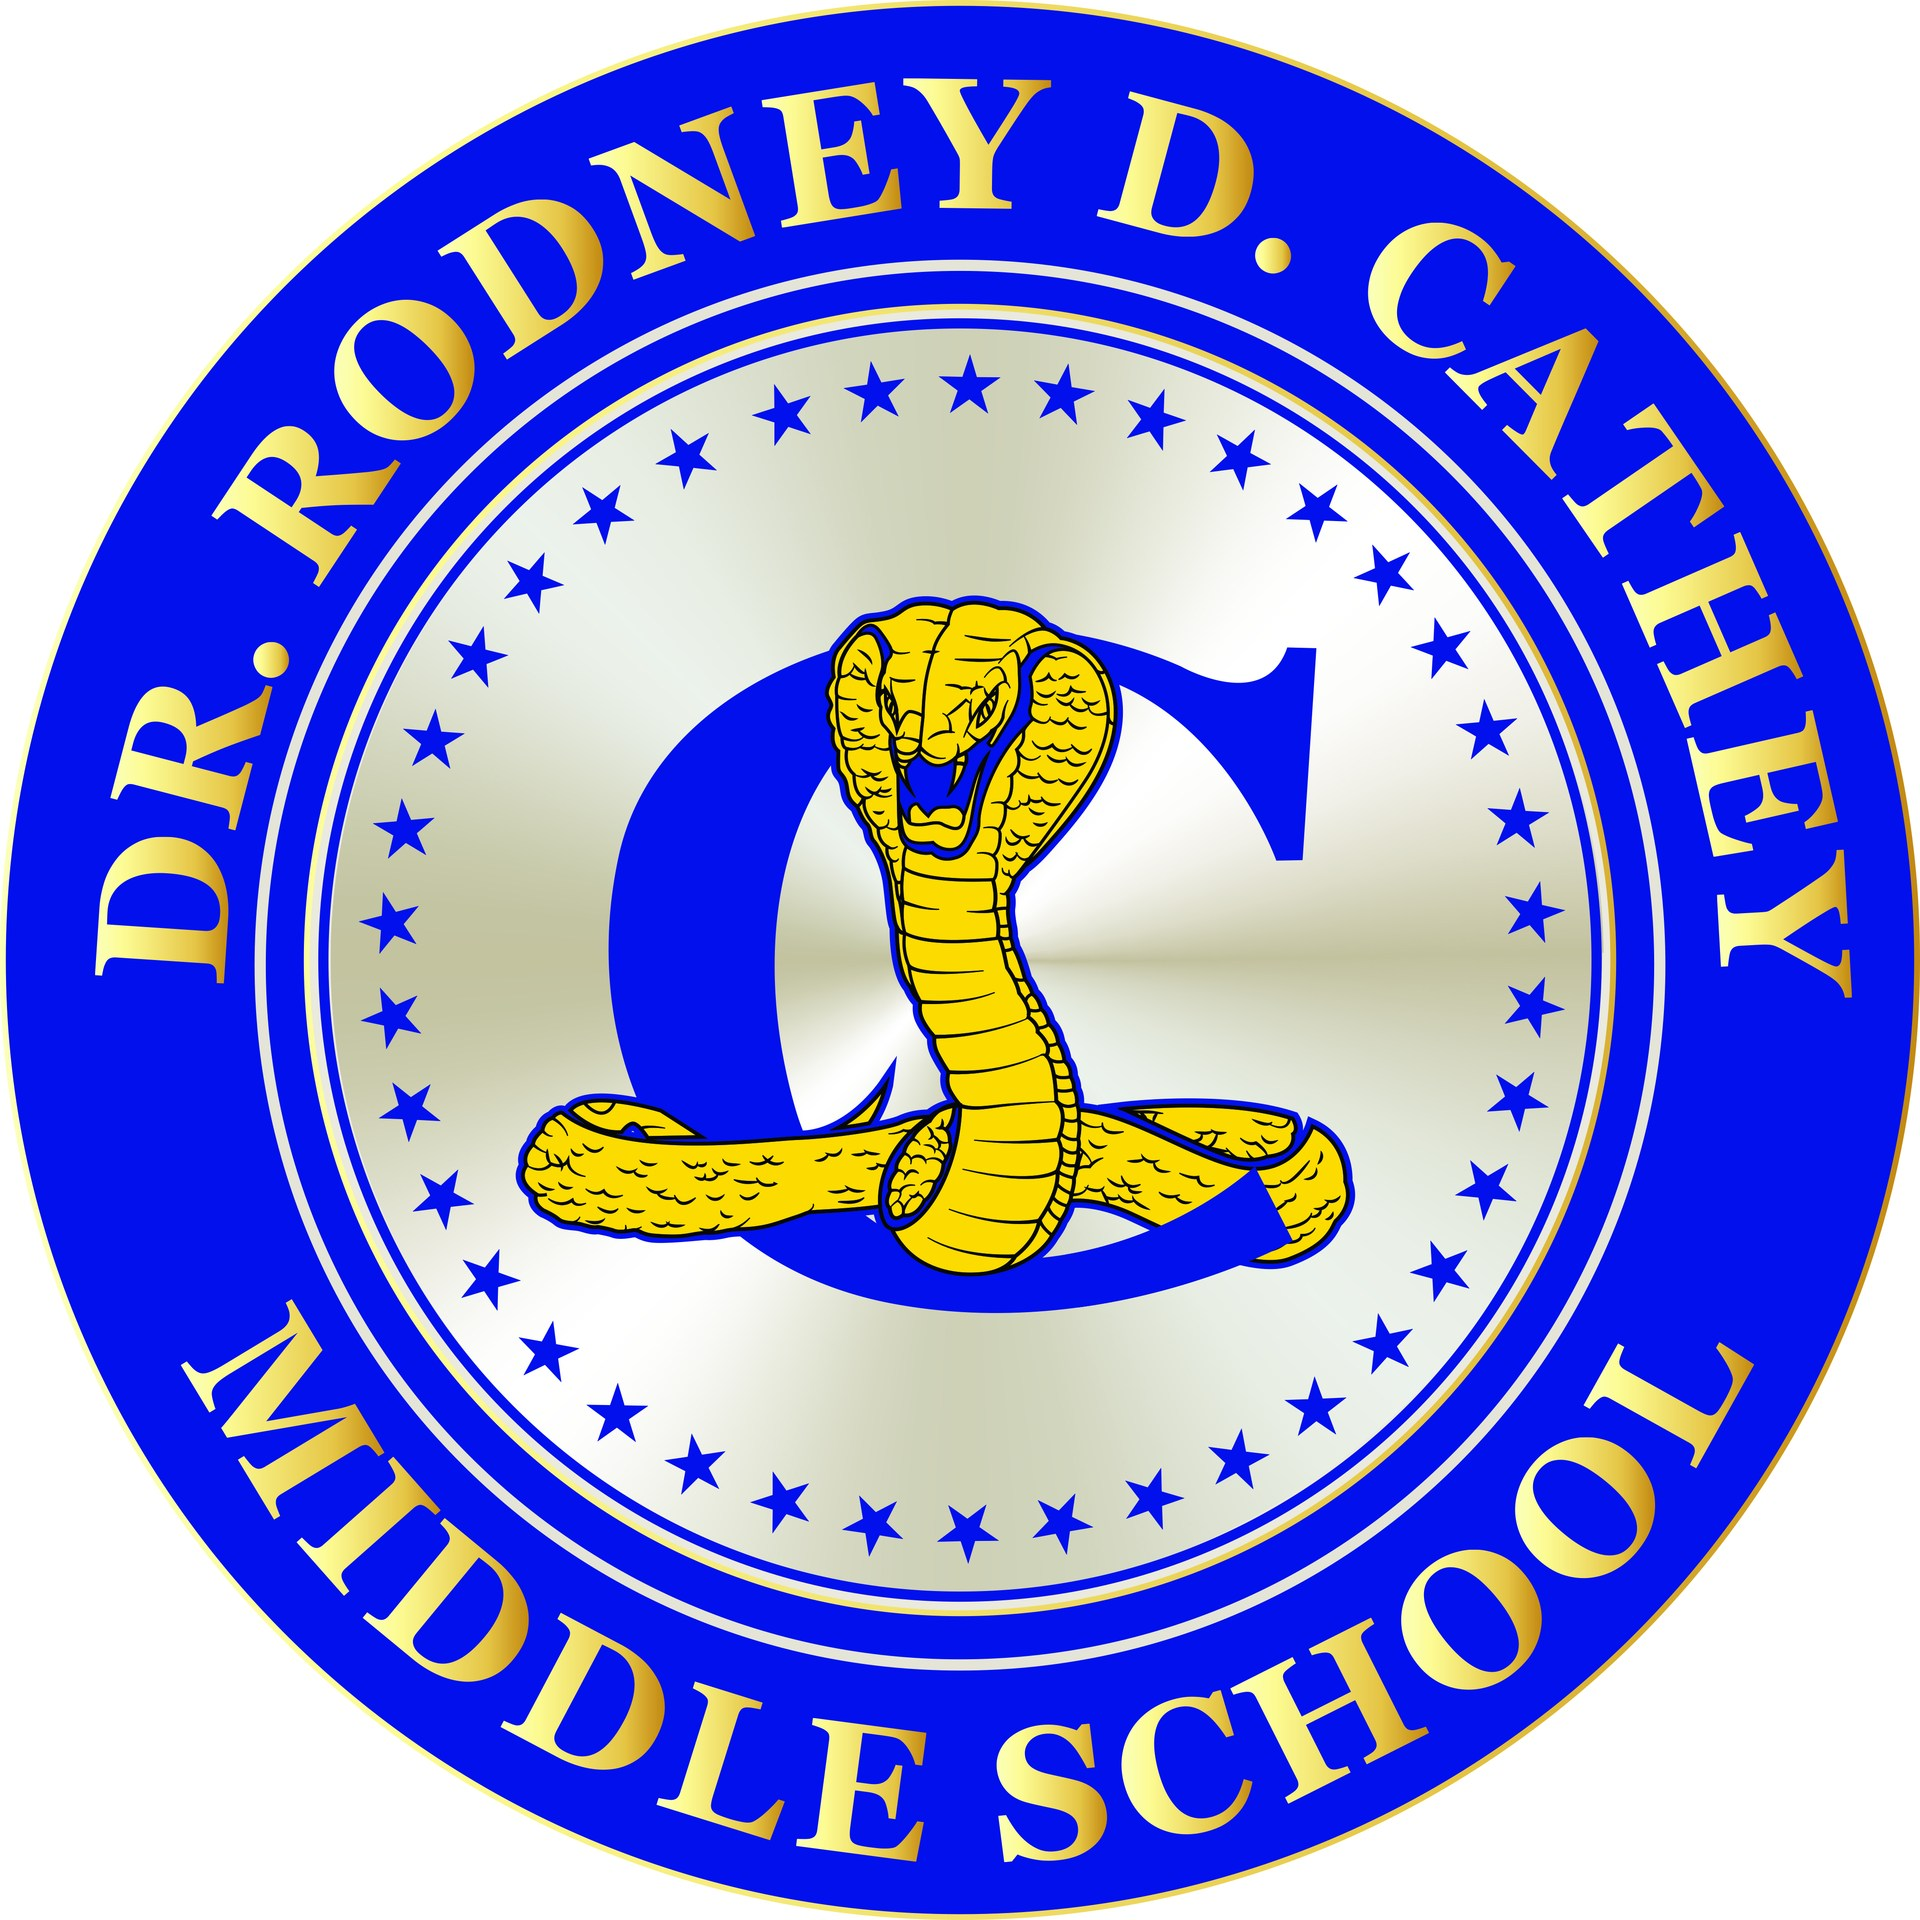 Dr. Rodney D. Cathey Middle School seal